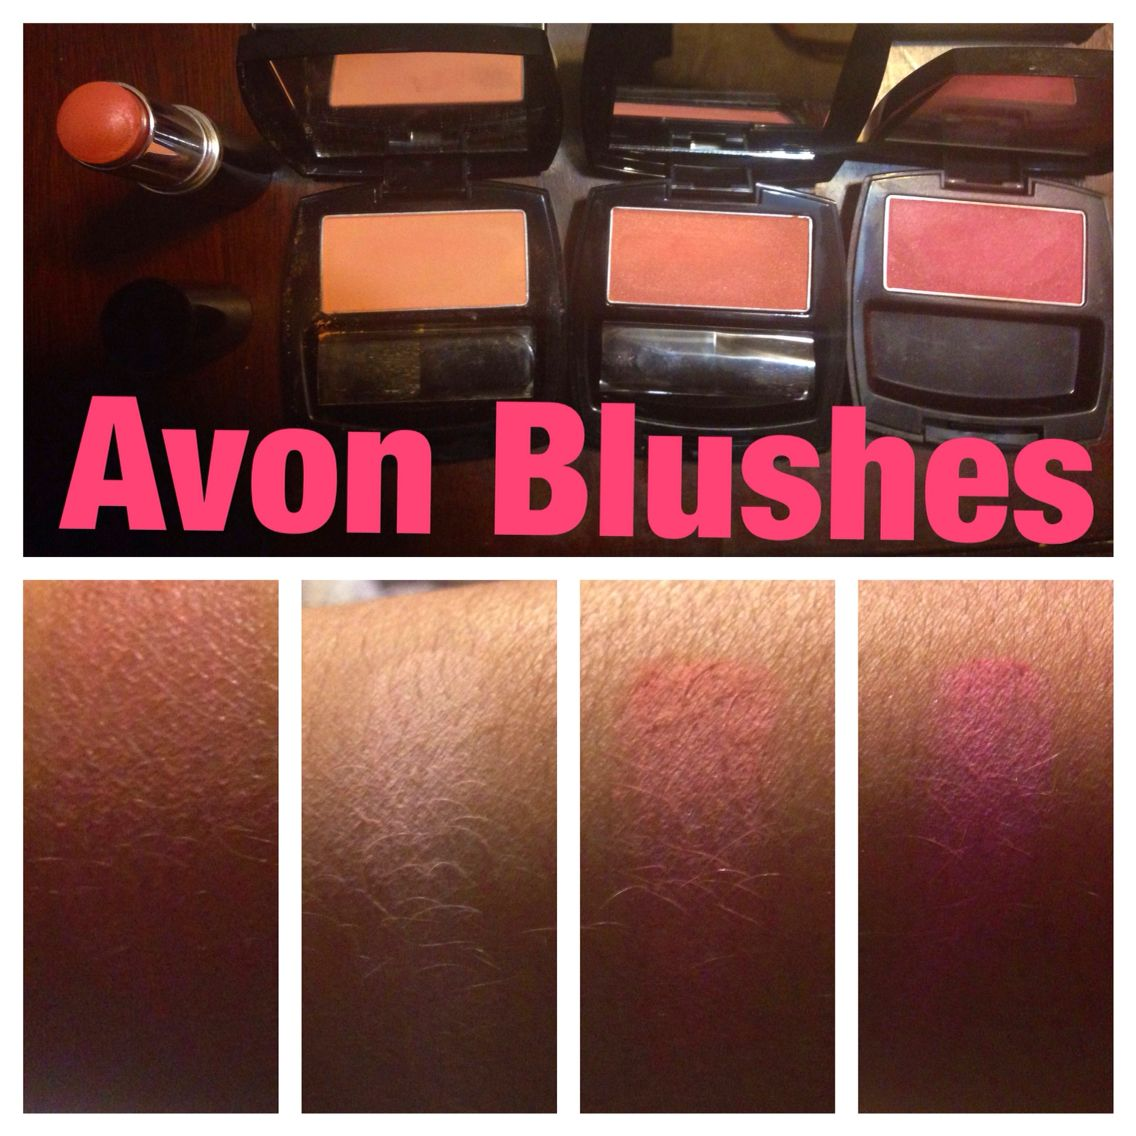 Avon Blush Colors From Left To Right Blushing Nude Cream Blush